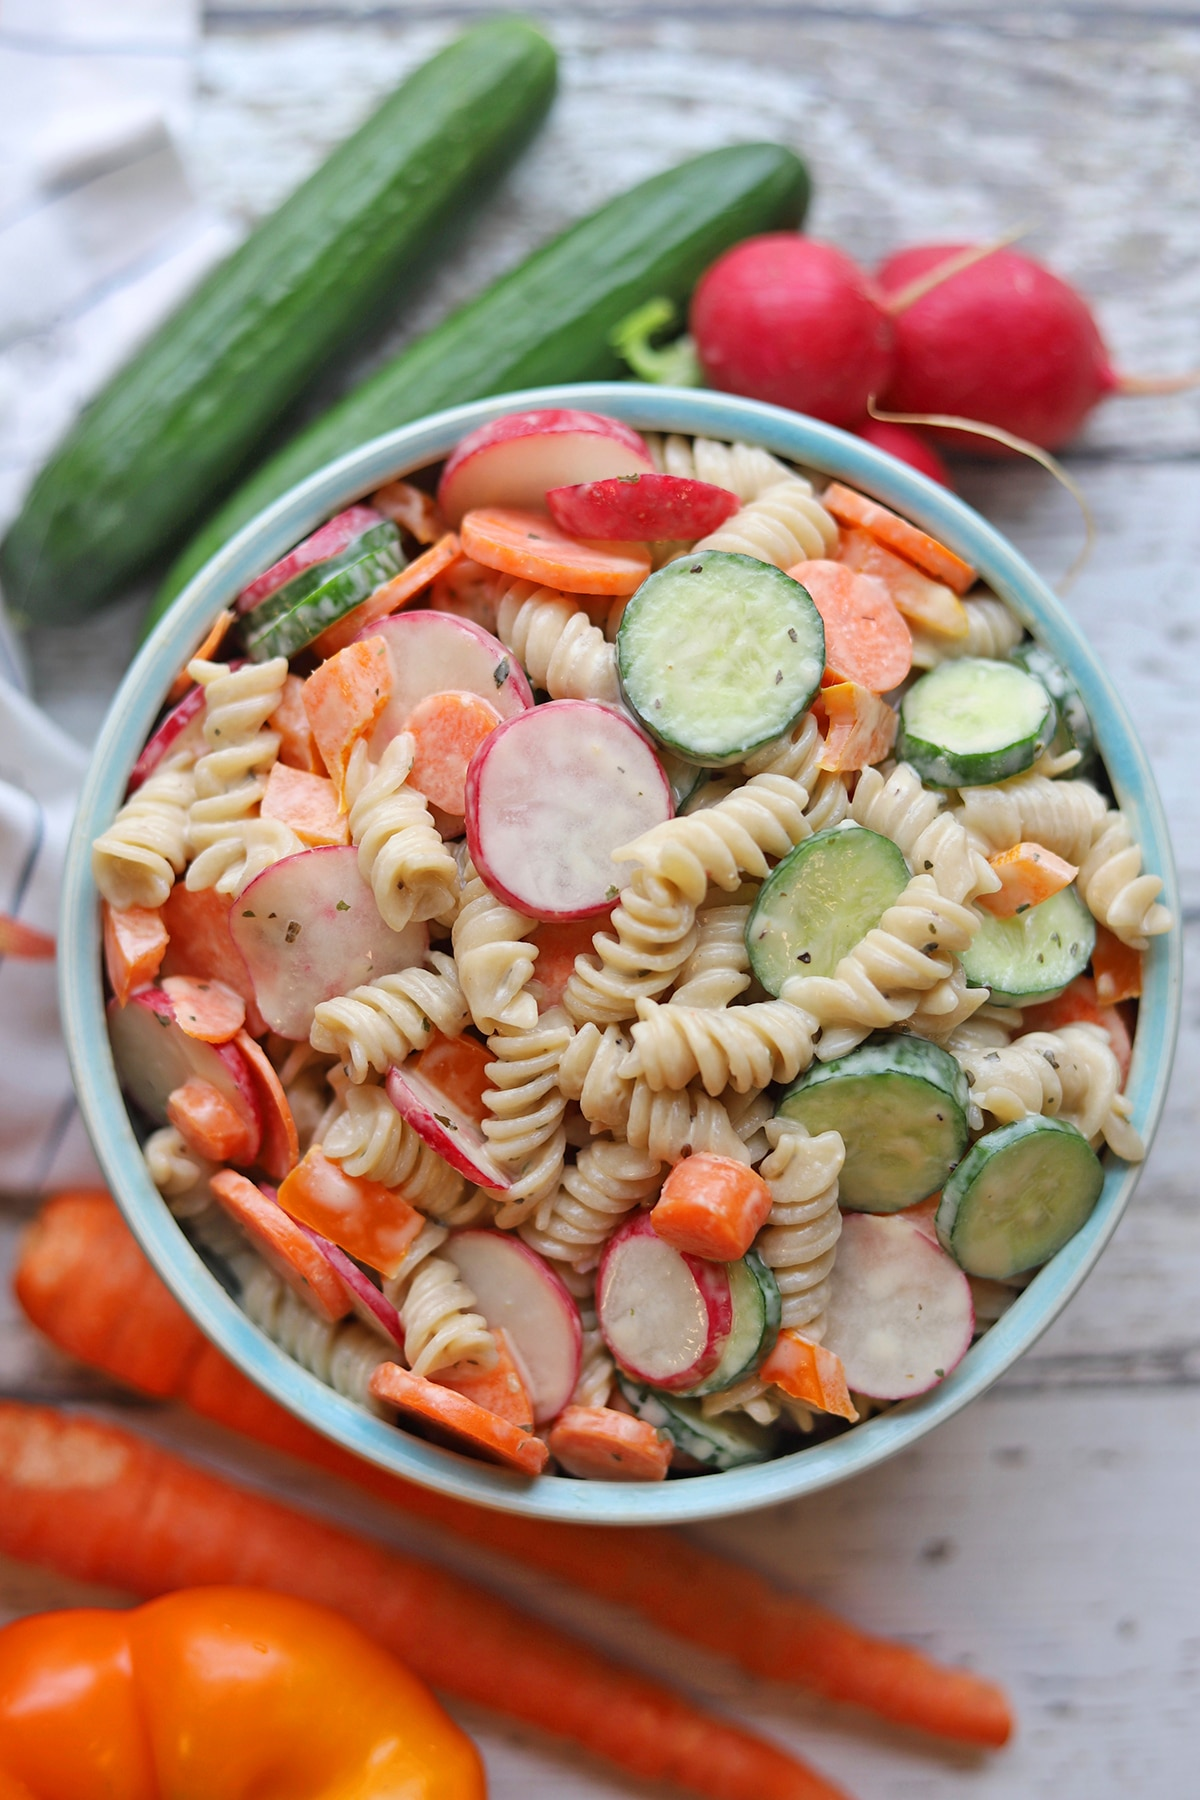 Overhead vegan pasta salad with sliced cucumbers, carrots, and radishes.